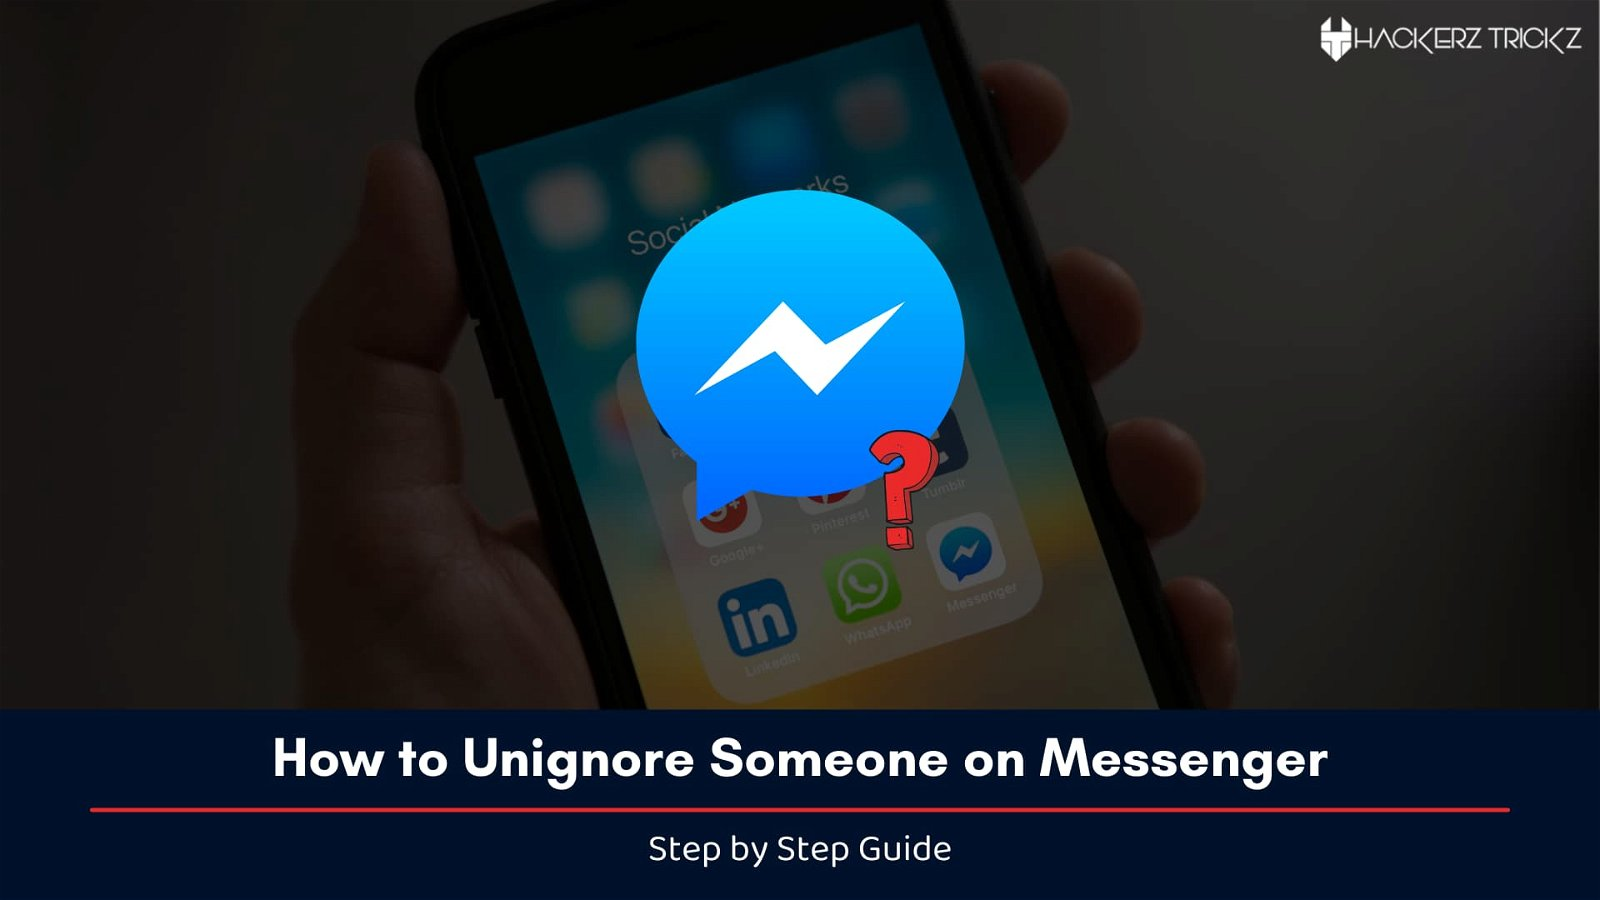 How to Unignore Someone on Messenger